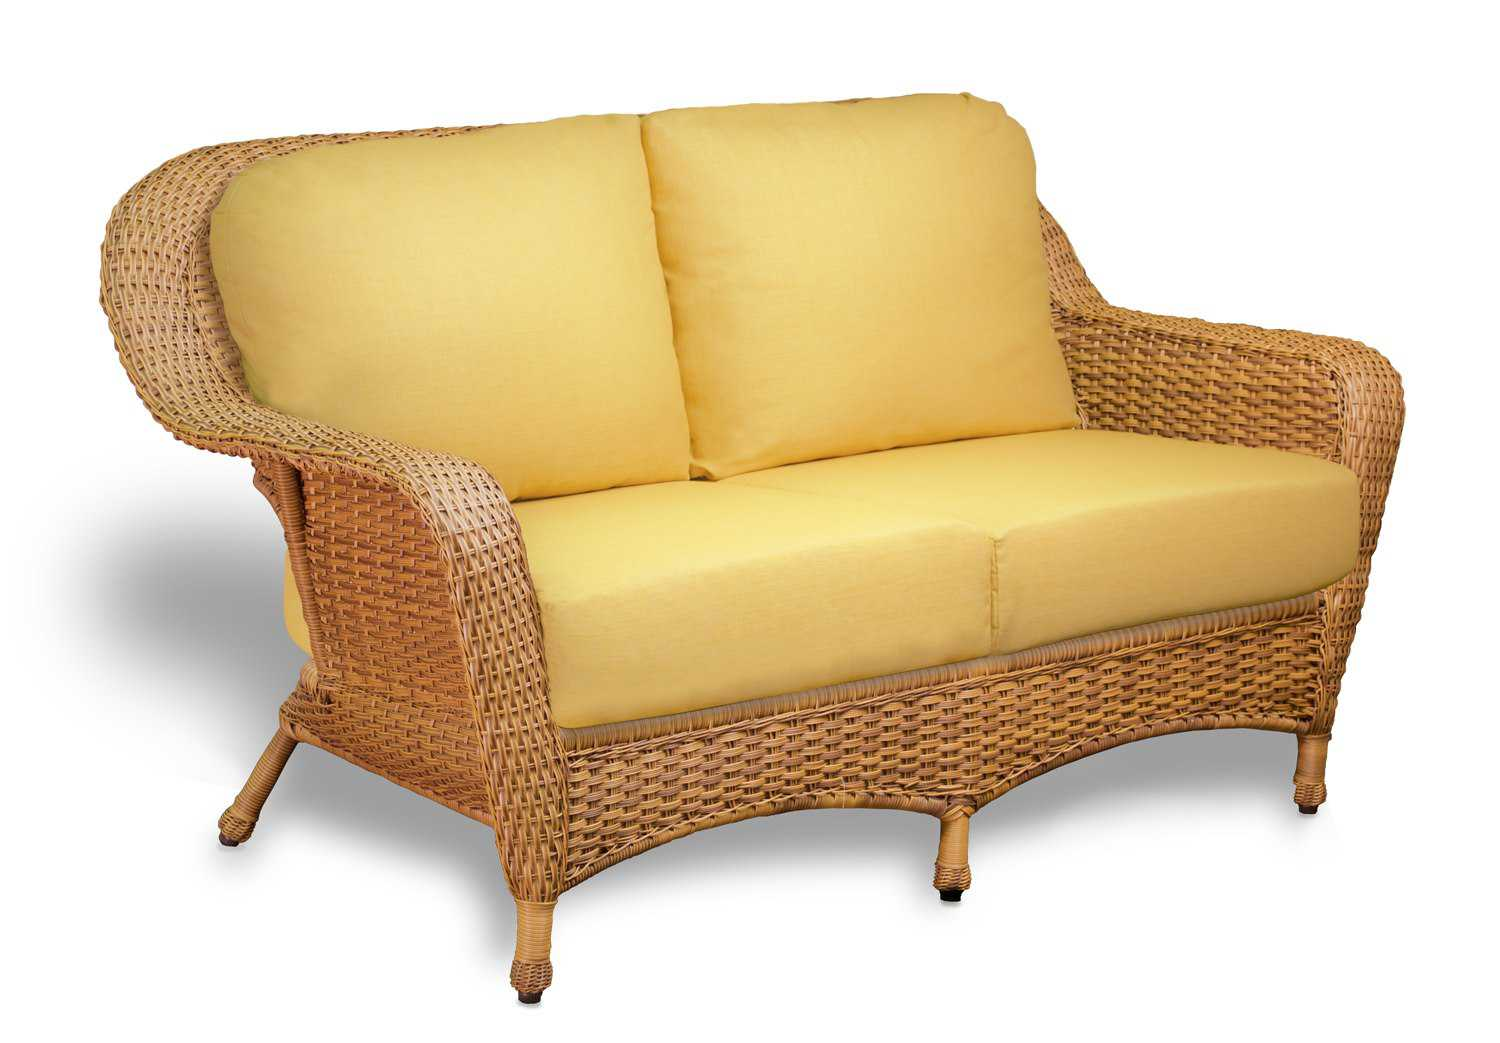 wc cushion products teak sunbrella chatsworth designs hero creek loveseat outdoor willow furniture sofa